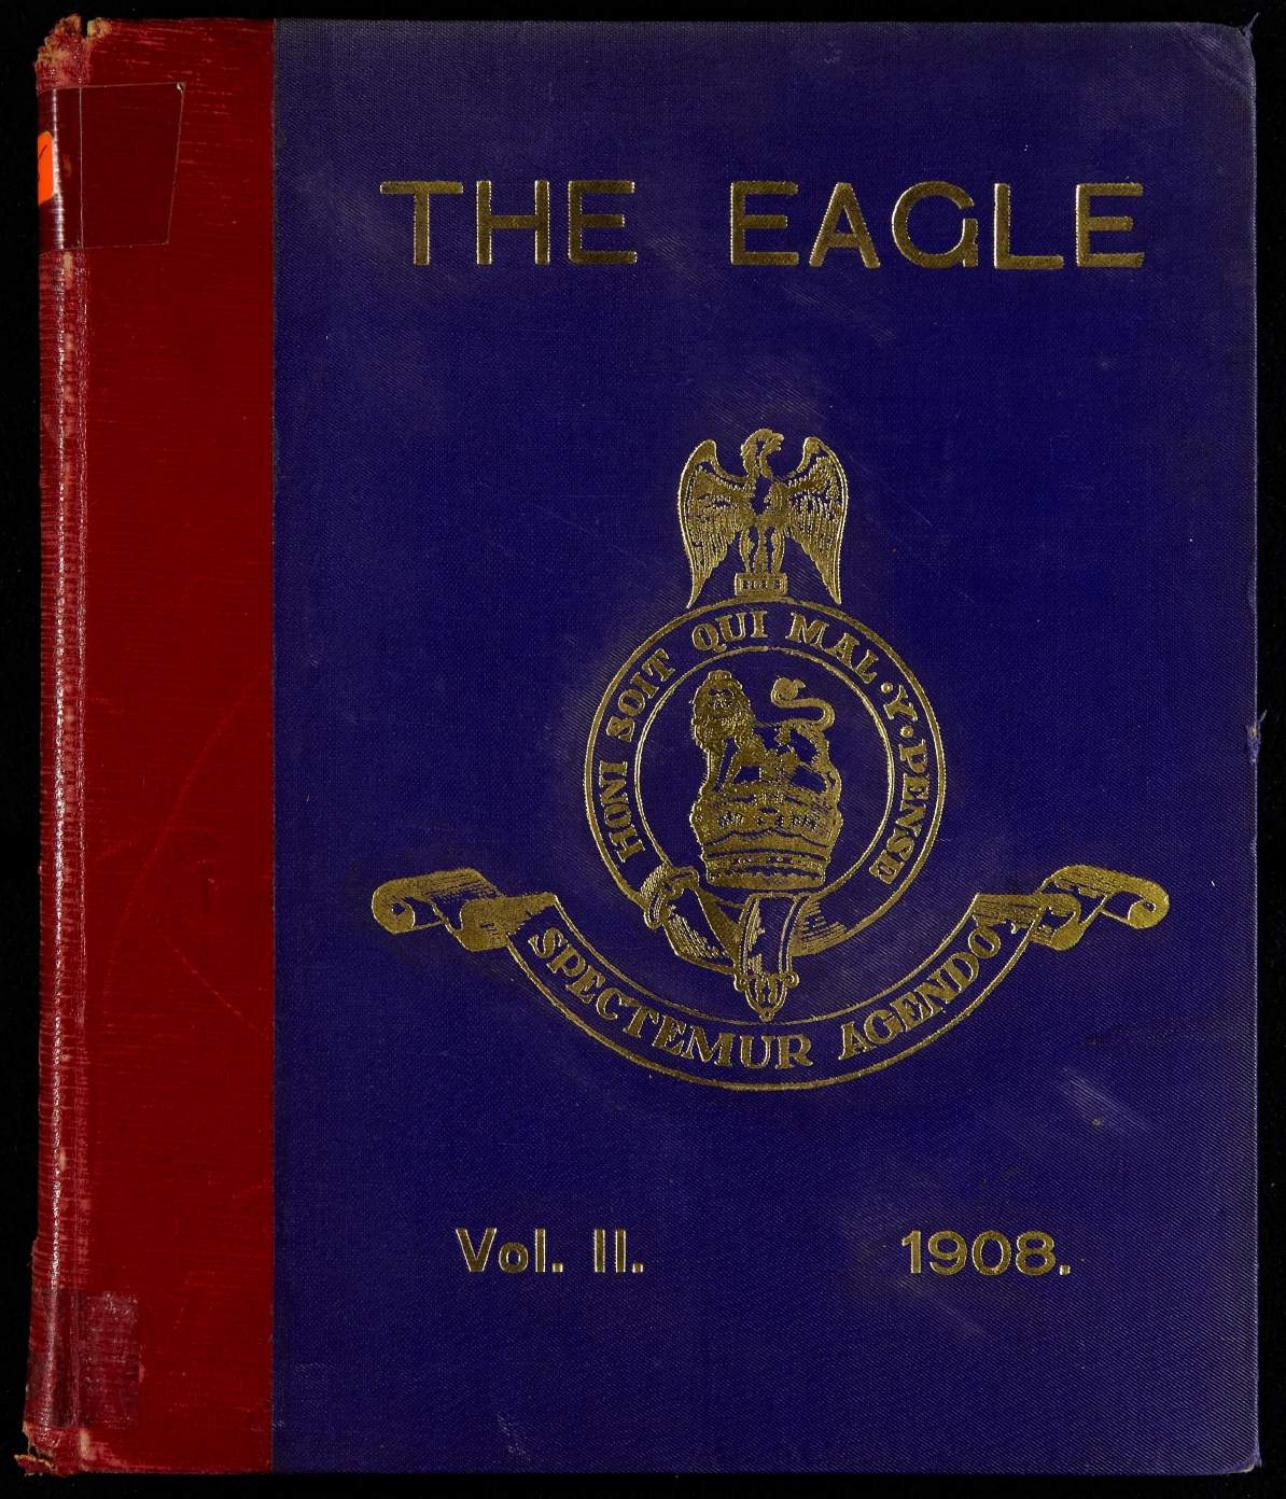 The eagle royal dragoons bound books the eagle 1908 pressed by RHG D Reg Sec issuu